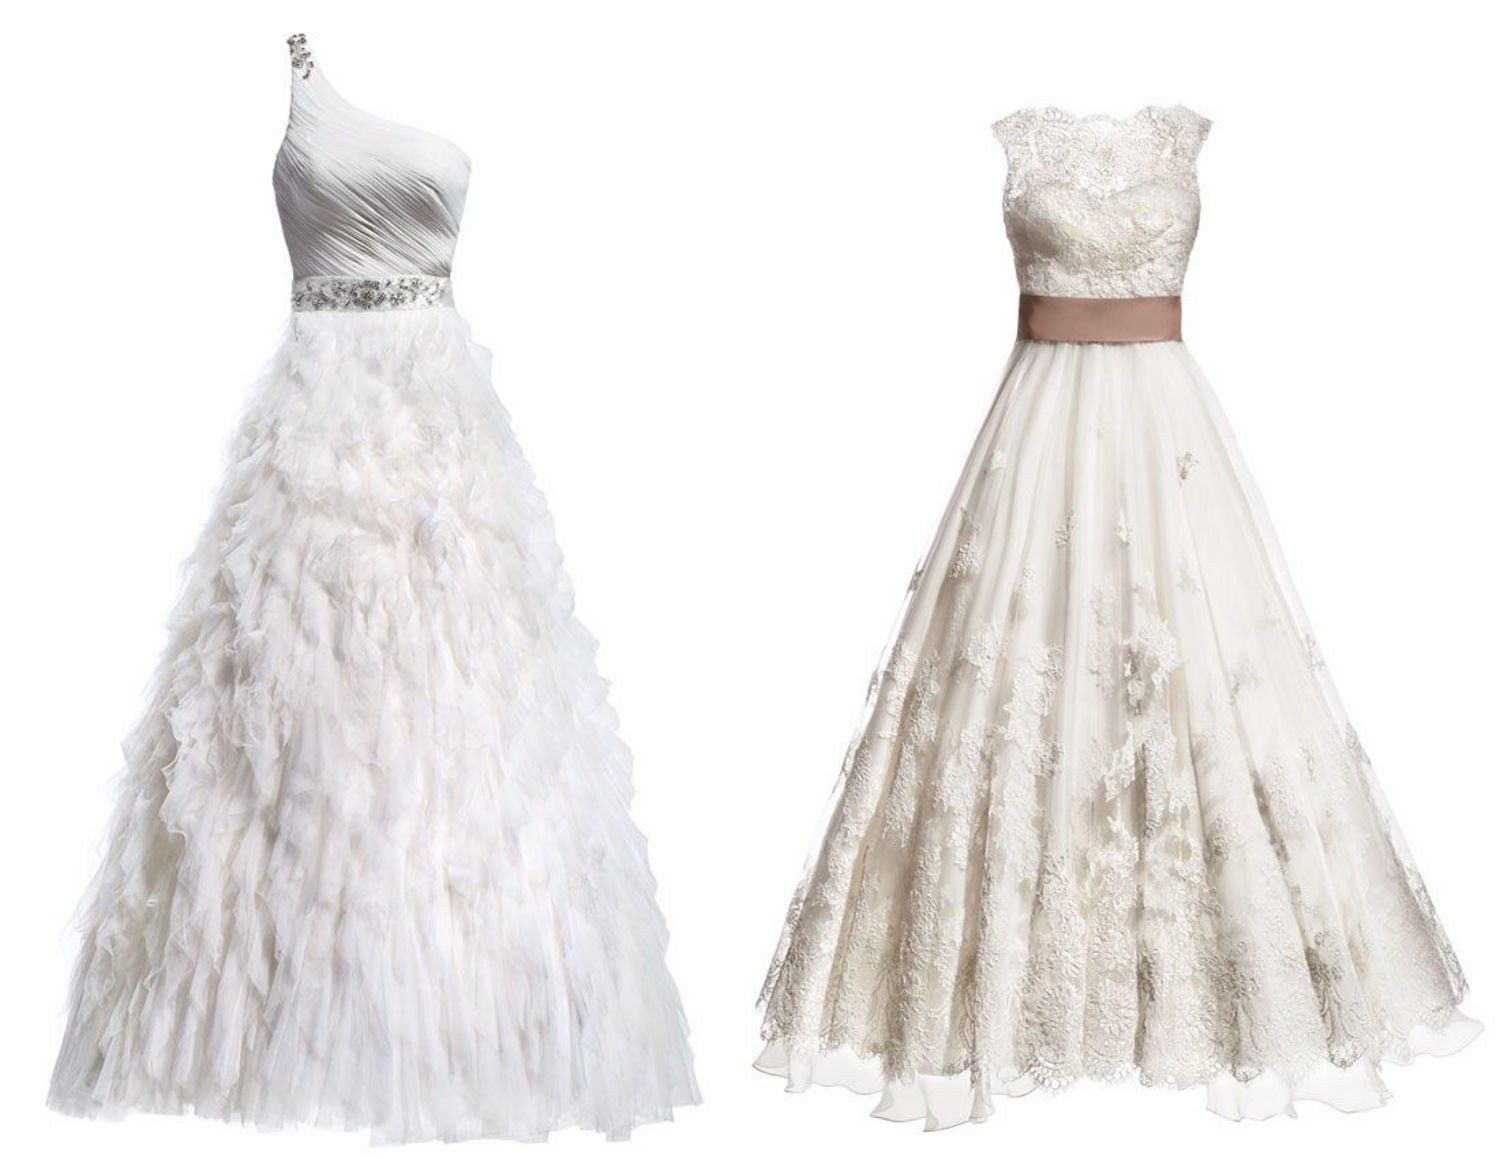 77 What Kind Of Wedding Dress Should I Have Dress For Country Wedding Guest Check More At Http Svesty Com What Kind Of Wedding Dress Should I Have